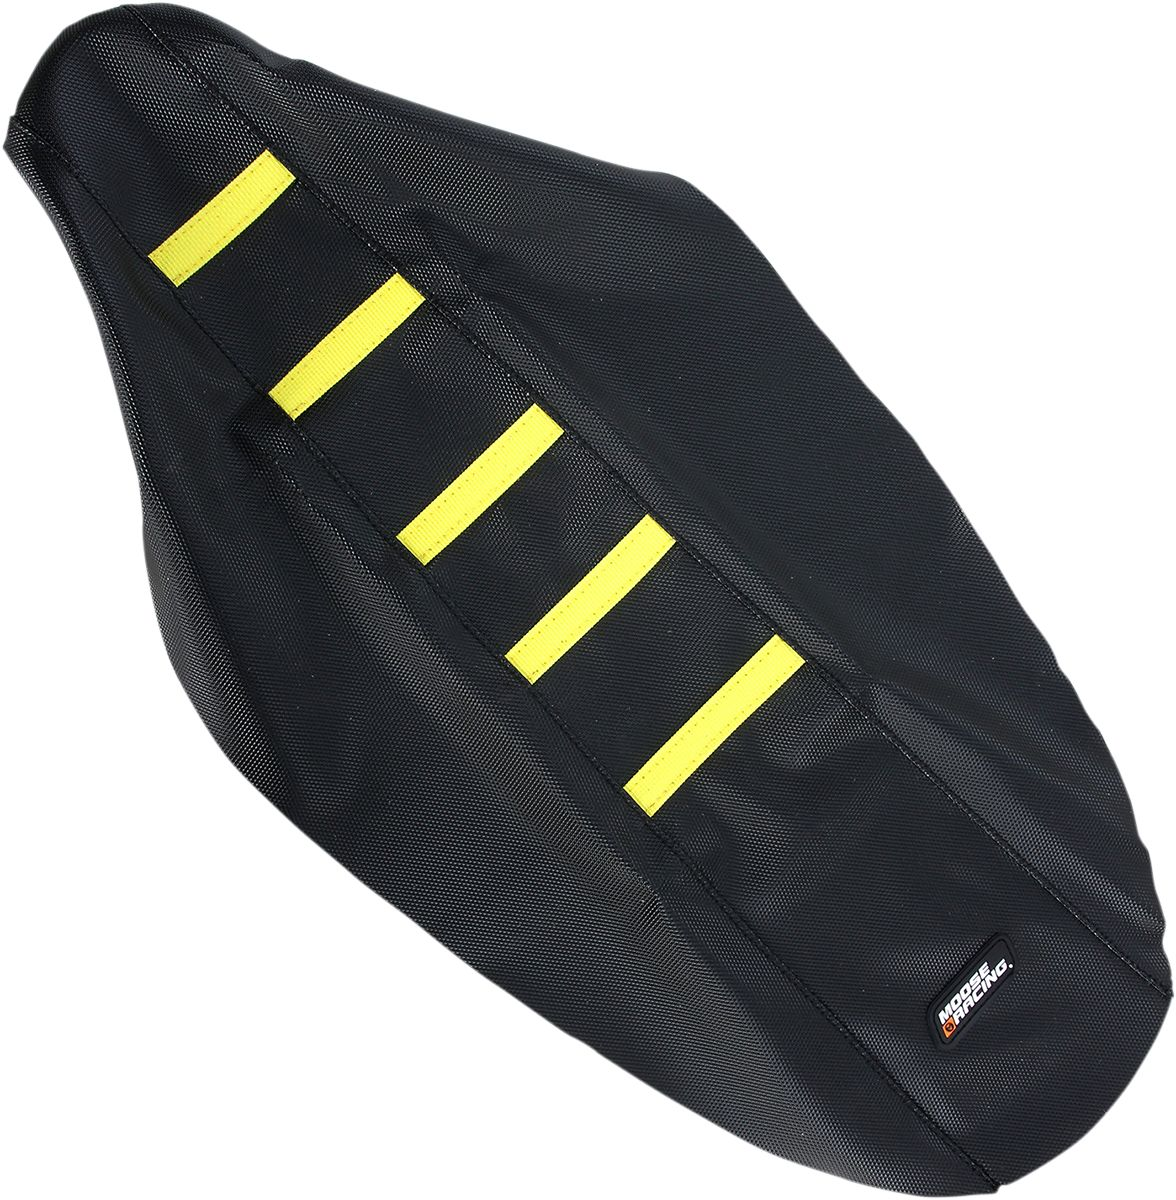 SEAT COVER RIBBED SUZ YEL